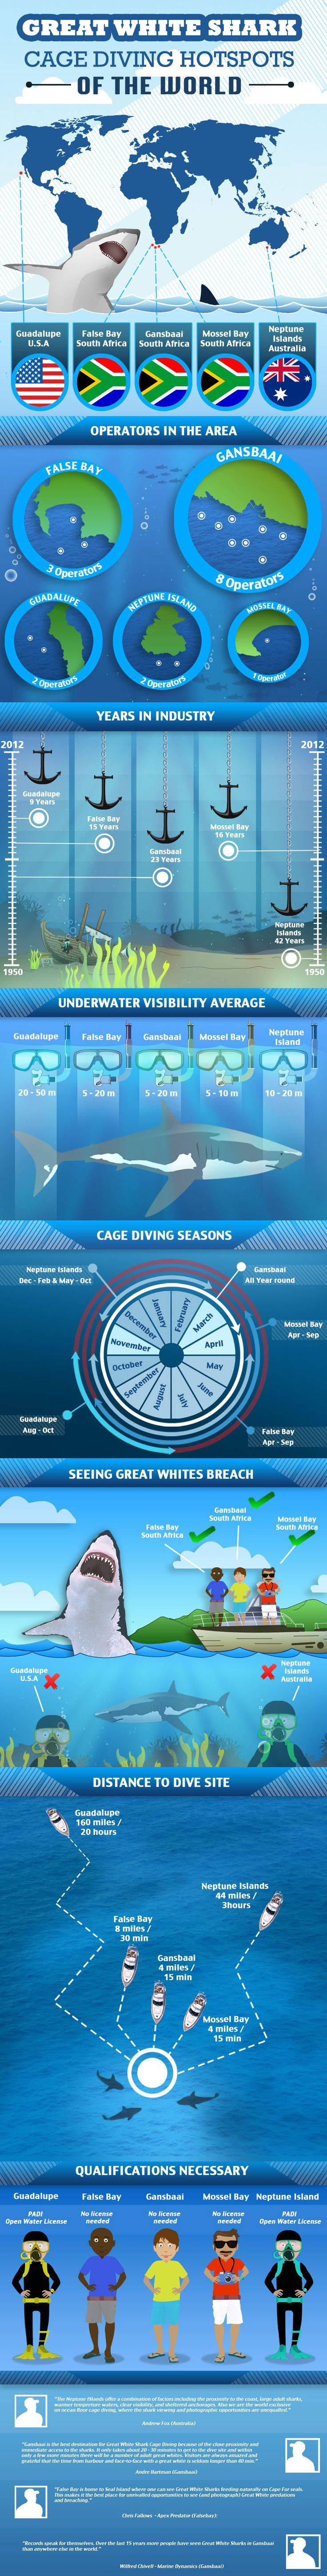 Great White Shark Cage Diving Hotspots of the World